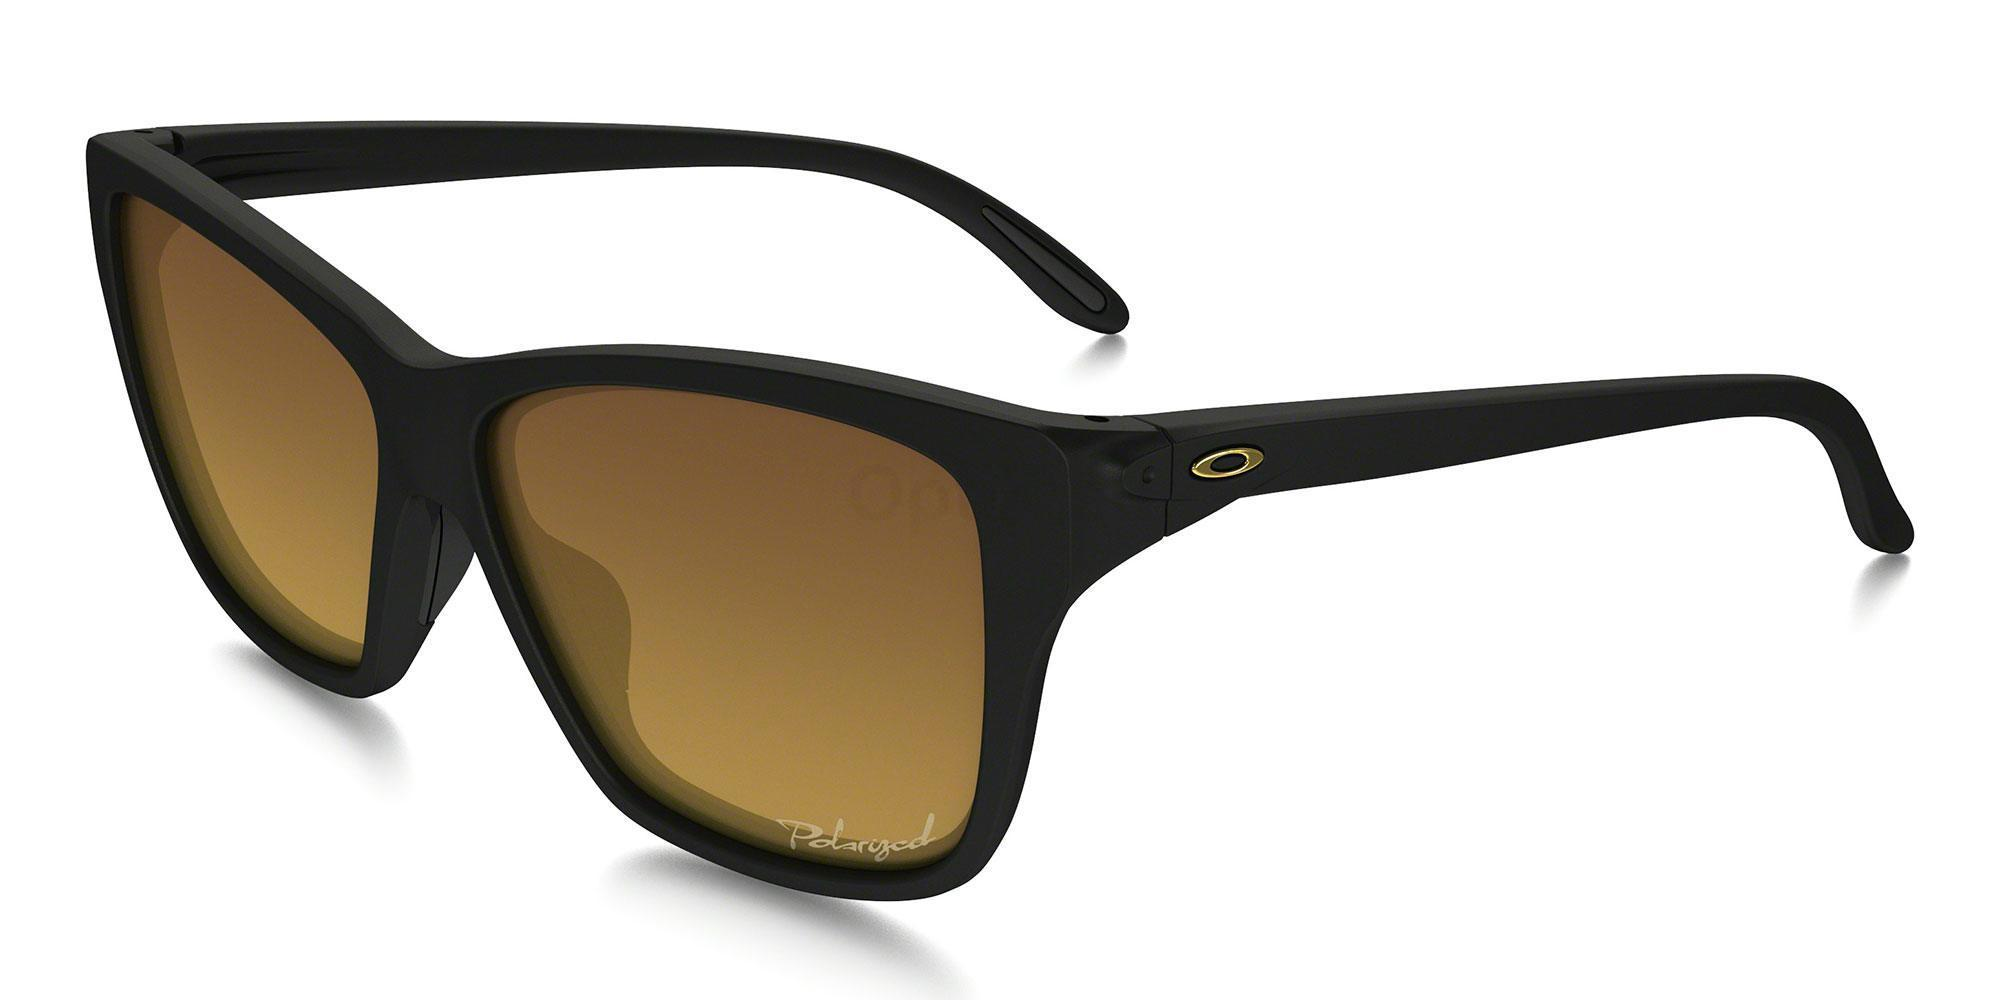 929801 OO9298 HOLD ON (Polarized) , Oakley Ladies